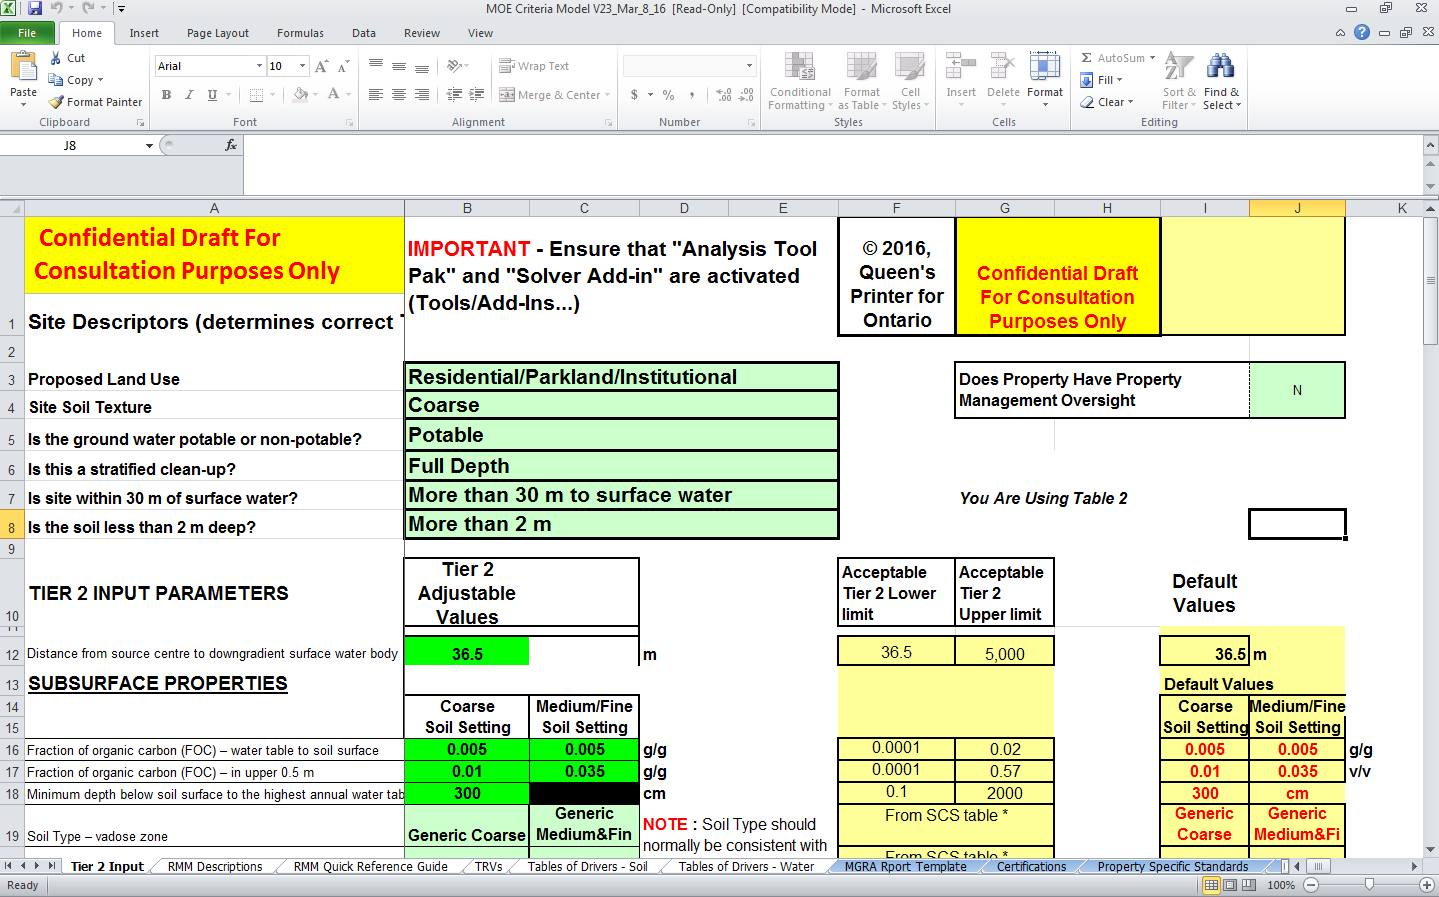 Model screenshot of the Tier 2 Input page showing tabs that are blue highlight